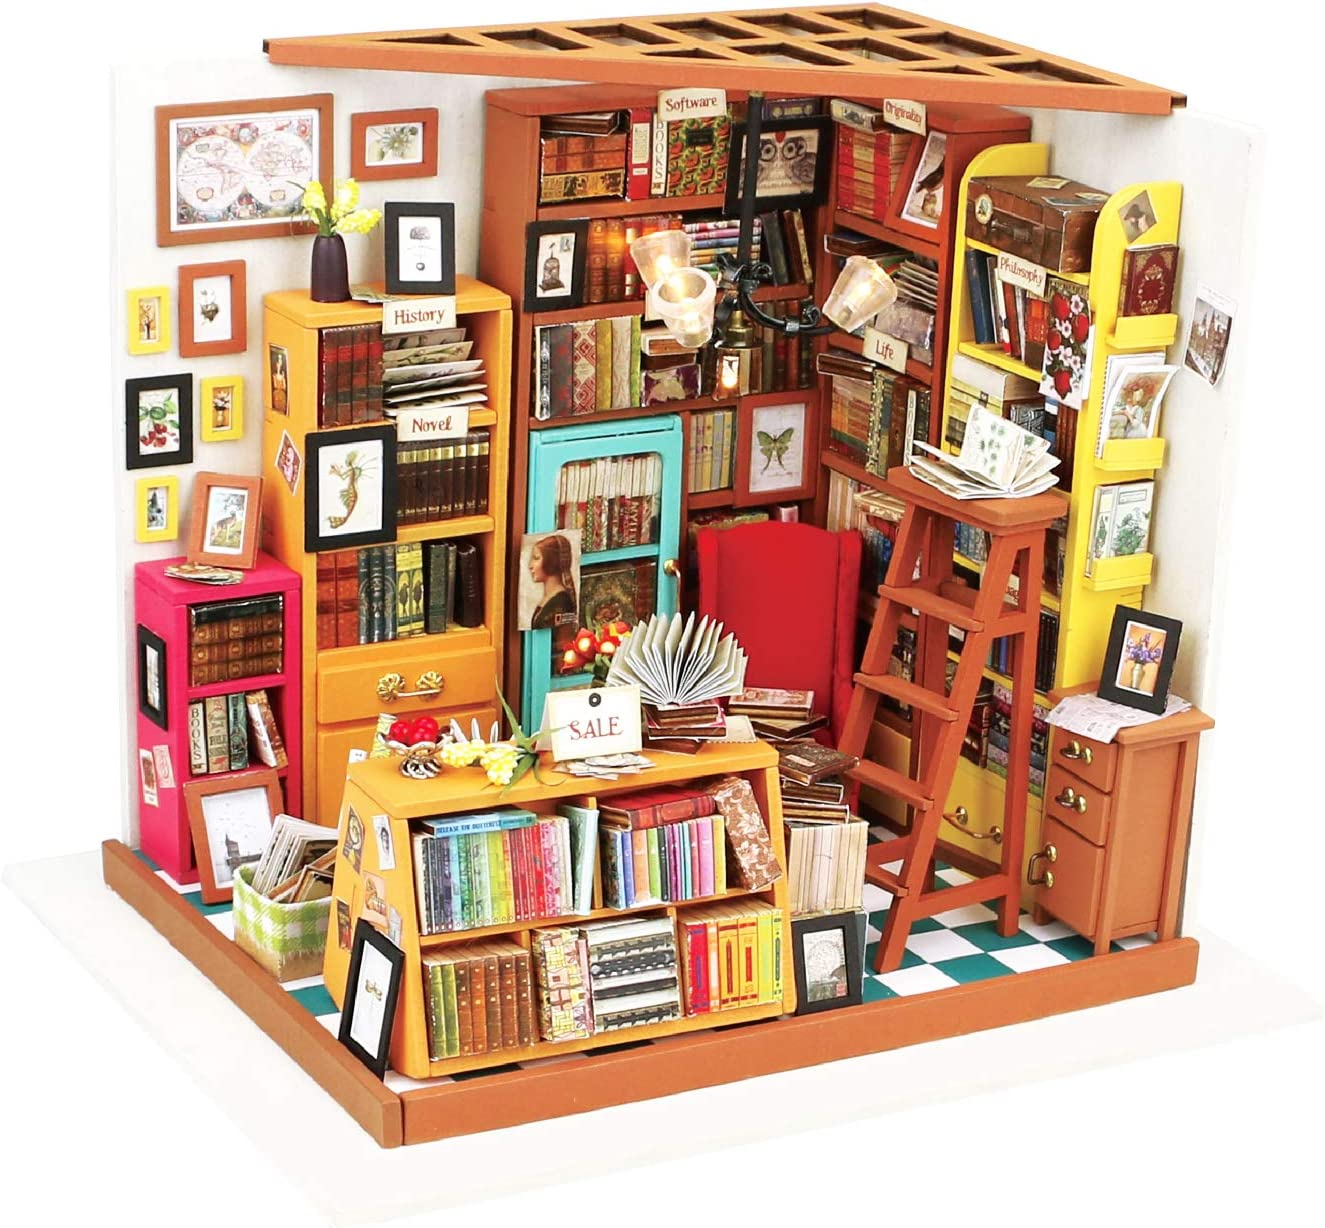 Hands Craft, DIY Miniature Dollhouse Kit with LED – Build Your Own Wooden Miniature Dollhouse Craft Kit for Adults and Teens | Makes for Women | (DG102 Sam's Study Library)